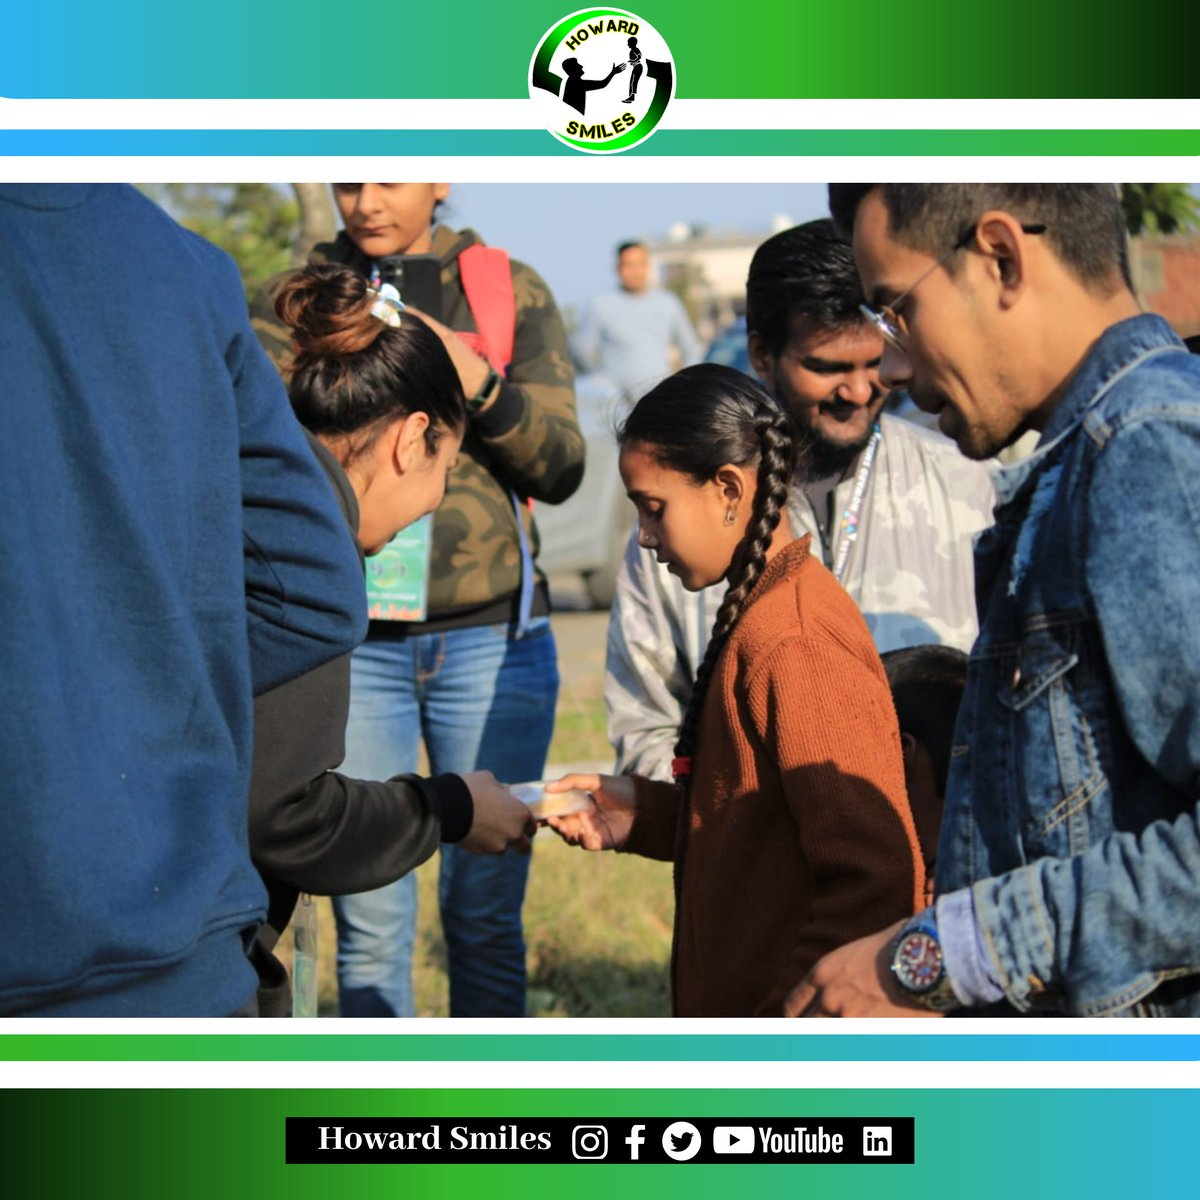 Willing hand to help someone is real service in terms of humanity. #howardsmiles #lpu #smile #studentorganization #socialwork